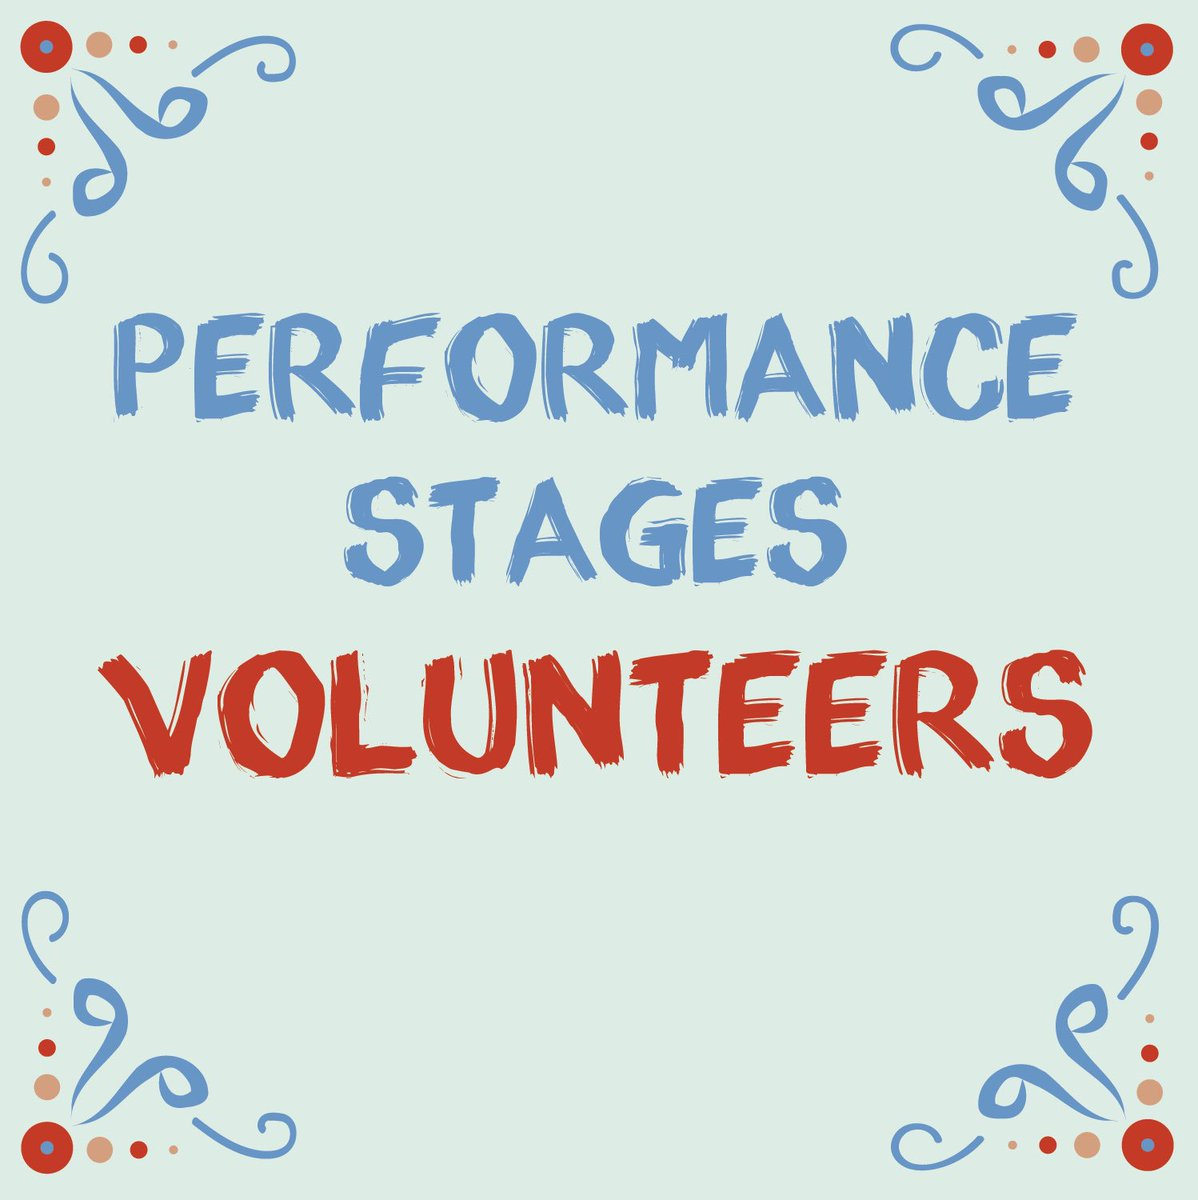 This is a call for Volunteers! We are asking for your help to assist the stages during the fair! Your job would be to announce the performers & help monitor the stages. If you are interested in becoming part of the SLAF team, sign up today! ❤️ #callforvolunteers #stlartfair